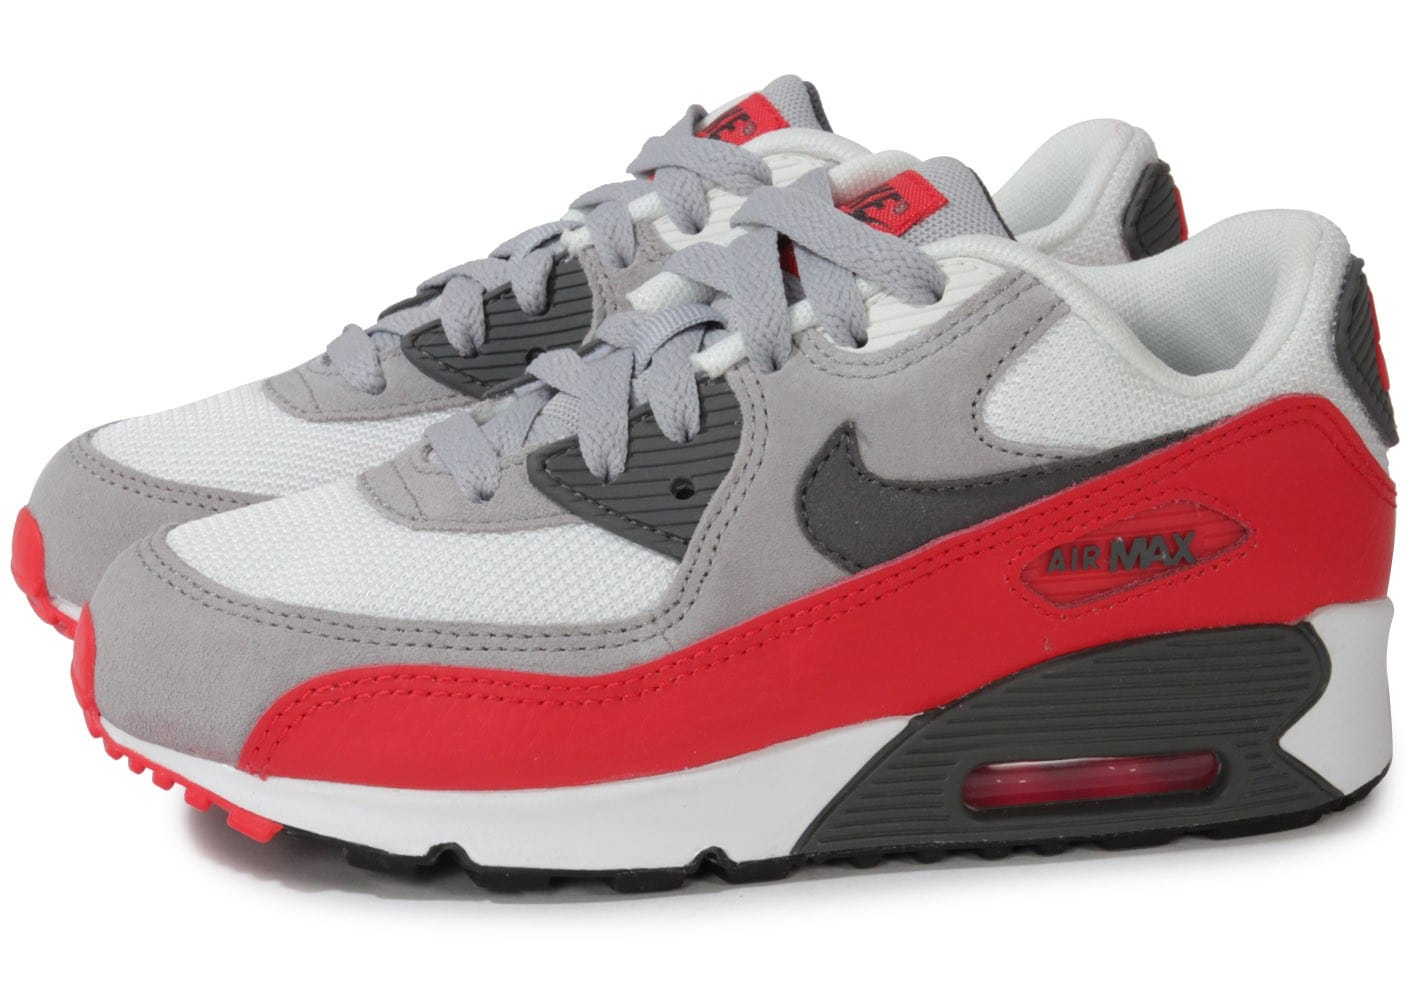 nike air max 90 enfant grise rouge chaussures chaussures chausport. Black Bedroom Furniture Sets. Home Design Ideas